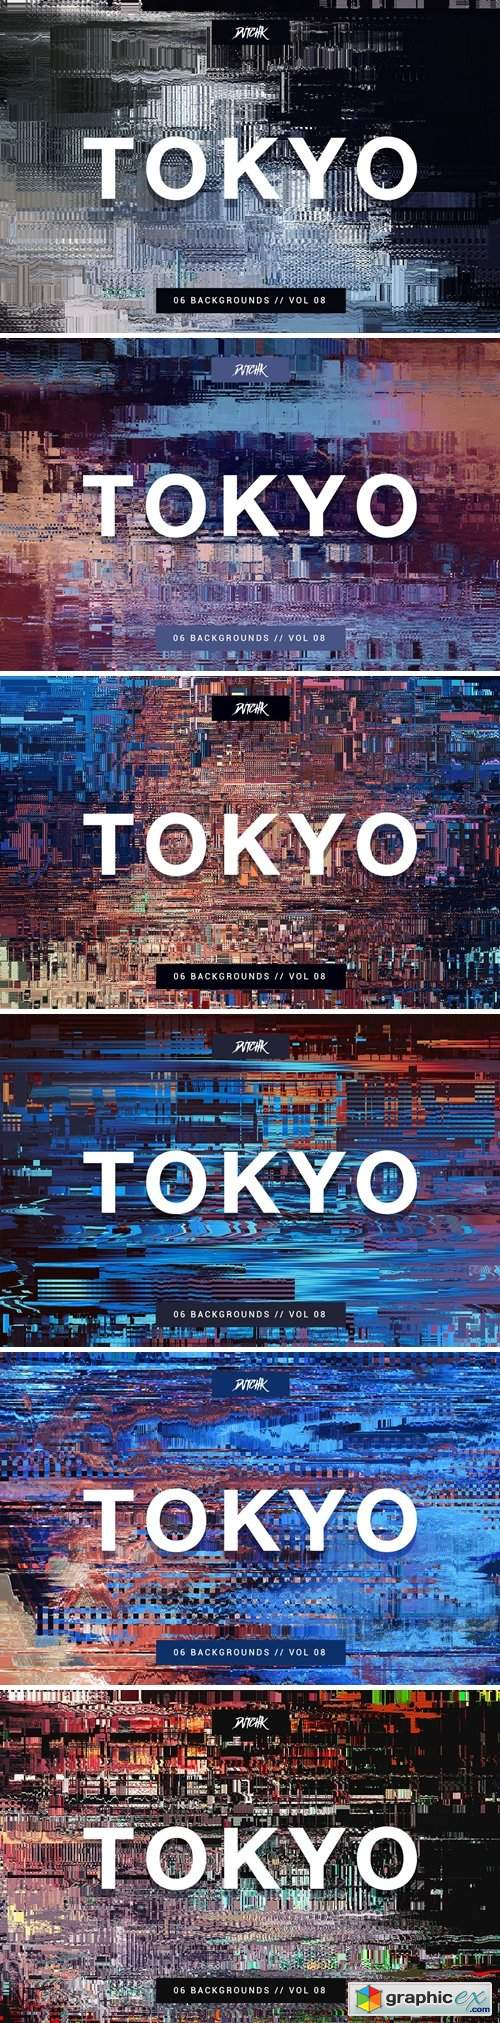 Tokyo| City Glitch Backgrounds | Vol. 08